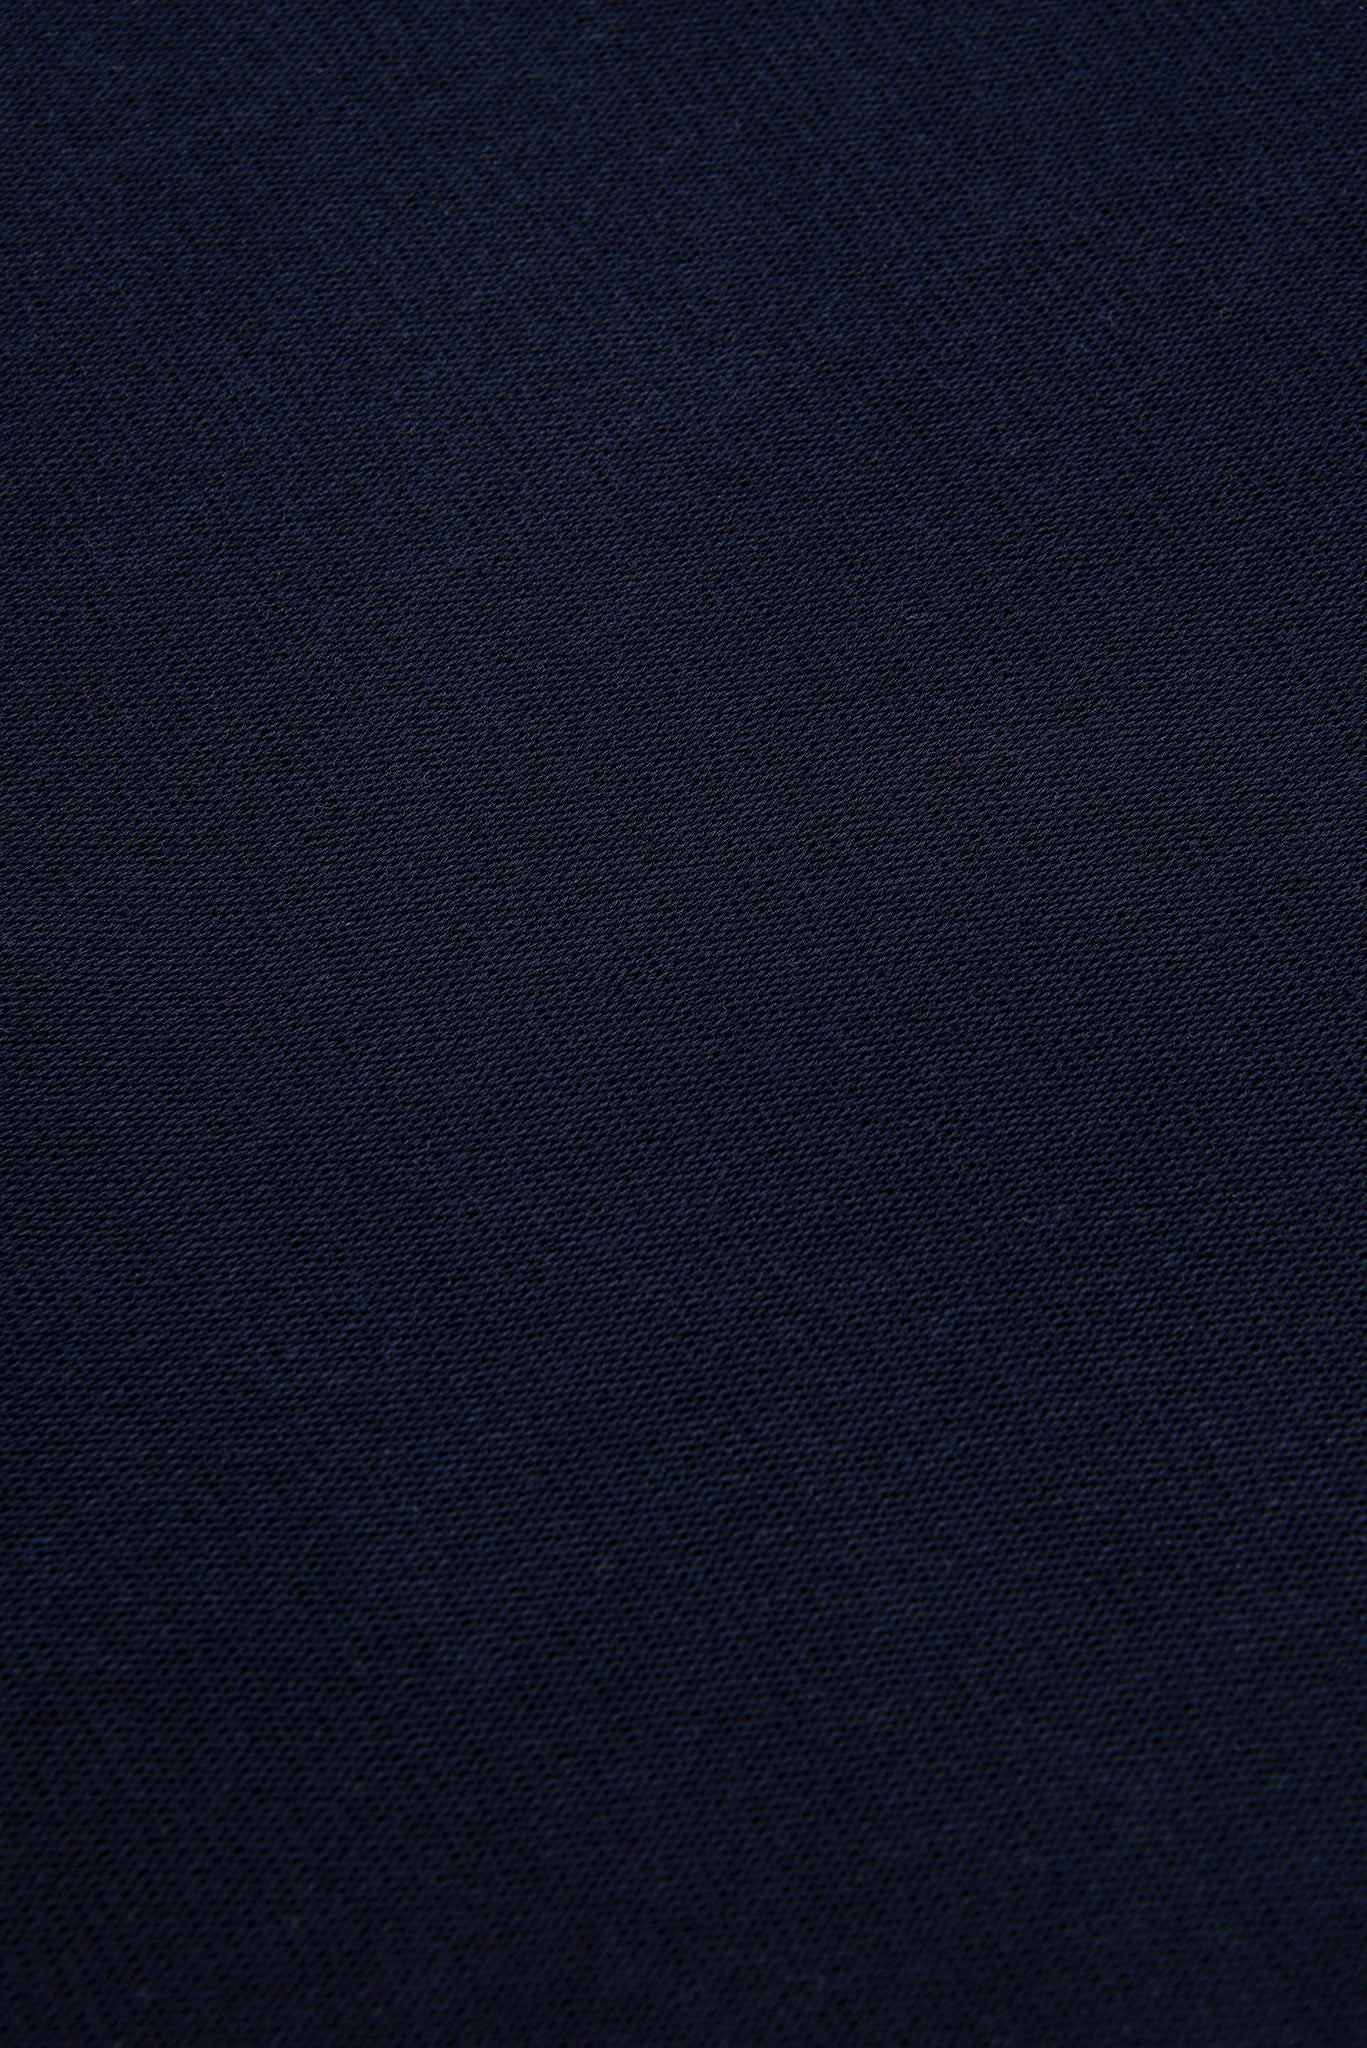 Maté Polo Tricot Compact Cotton (dark blue)